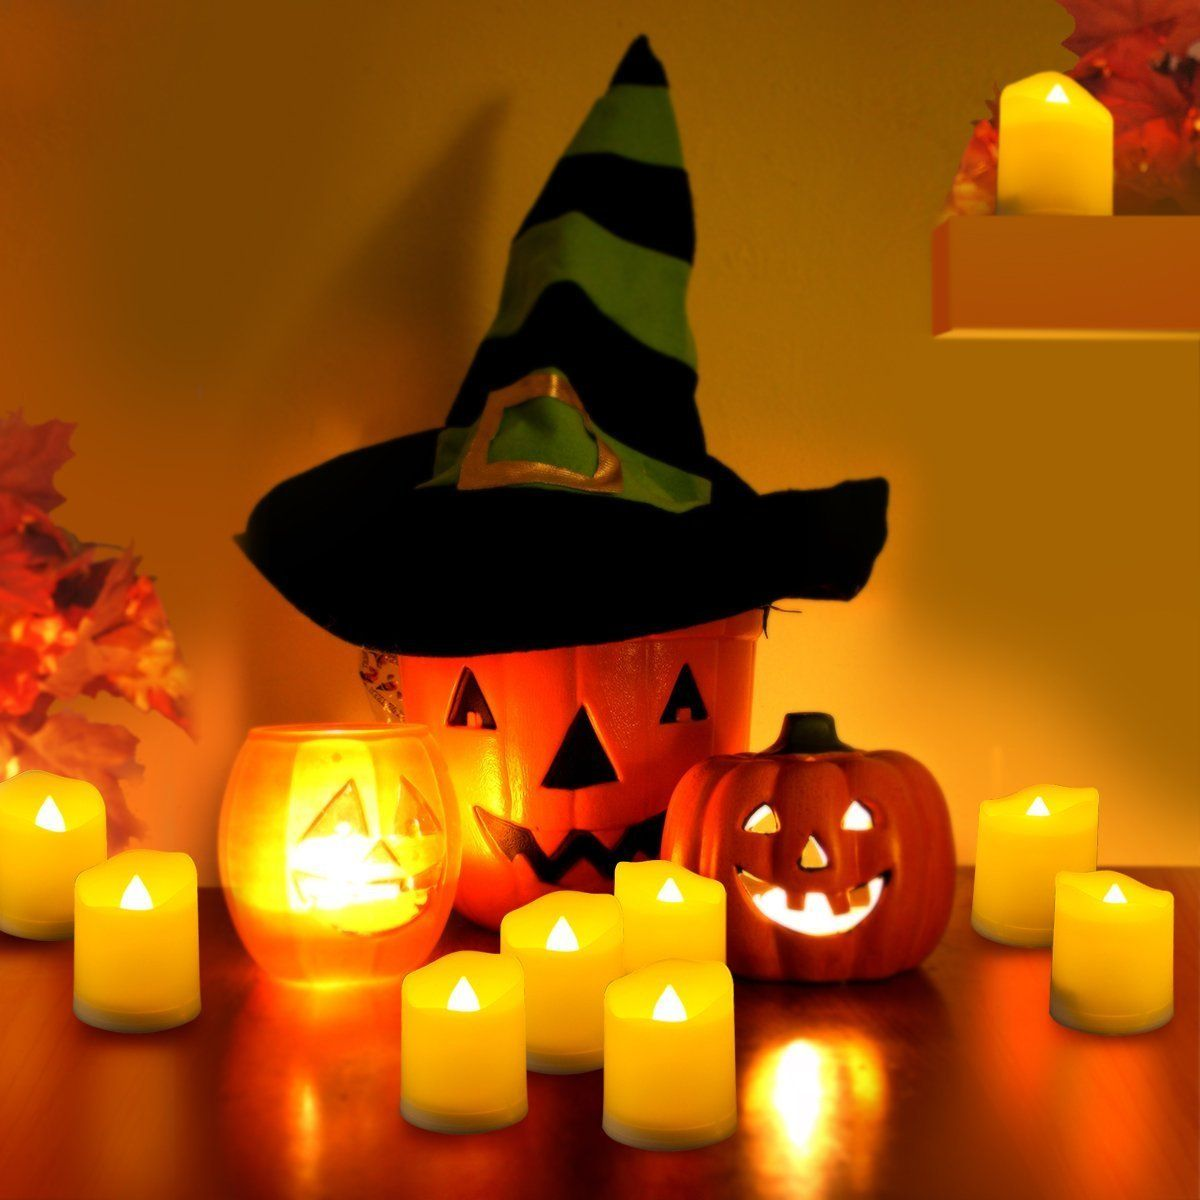 homemade halloween decorations : flameless candles led tealights